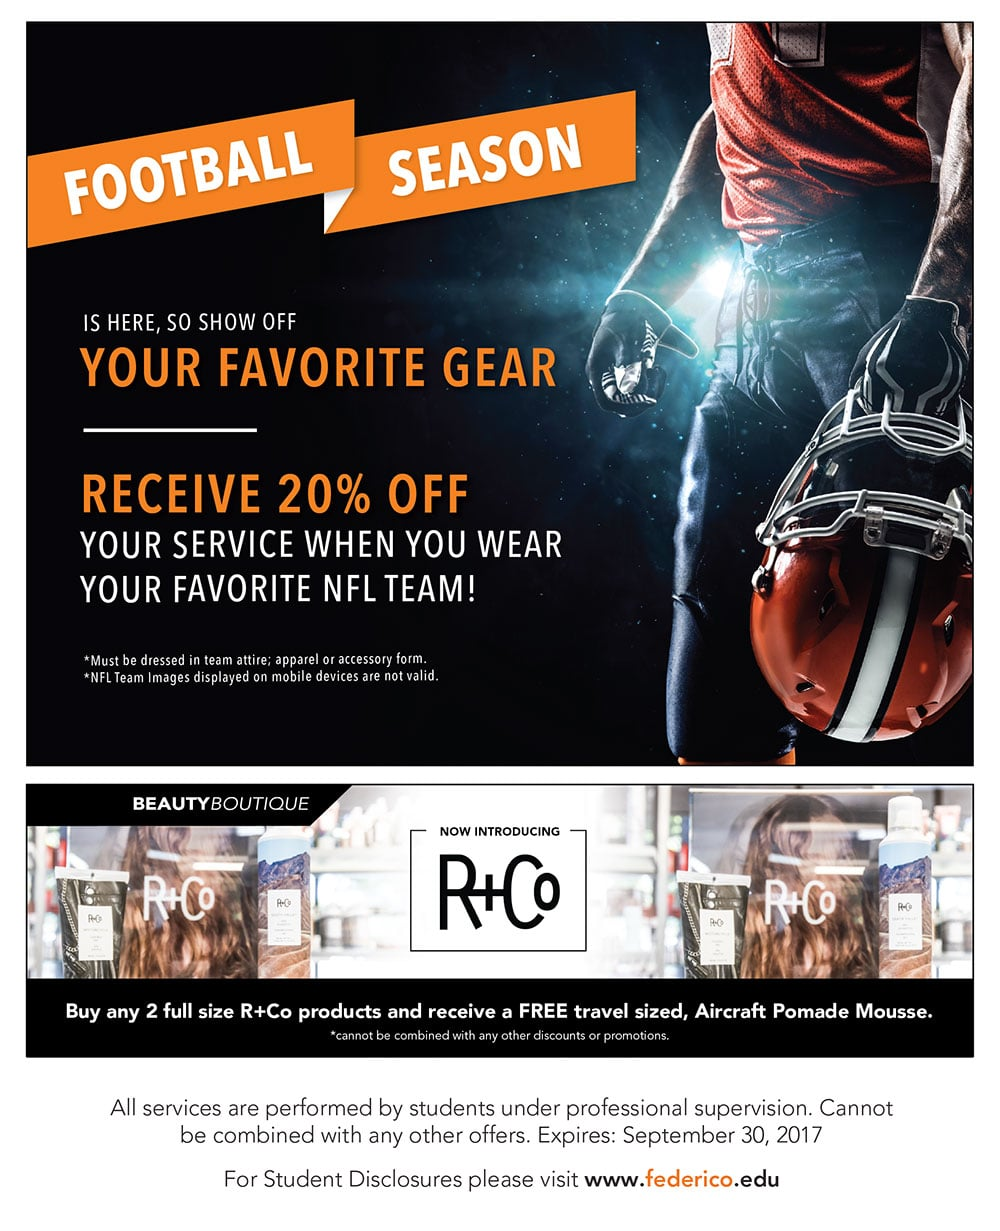 Football Season is here, so show off your favorite gear and receive 20% off your service